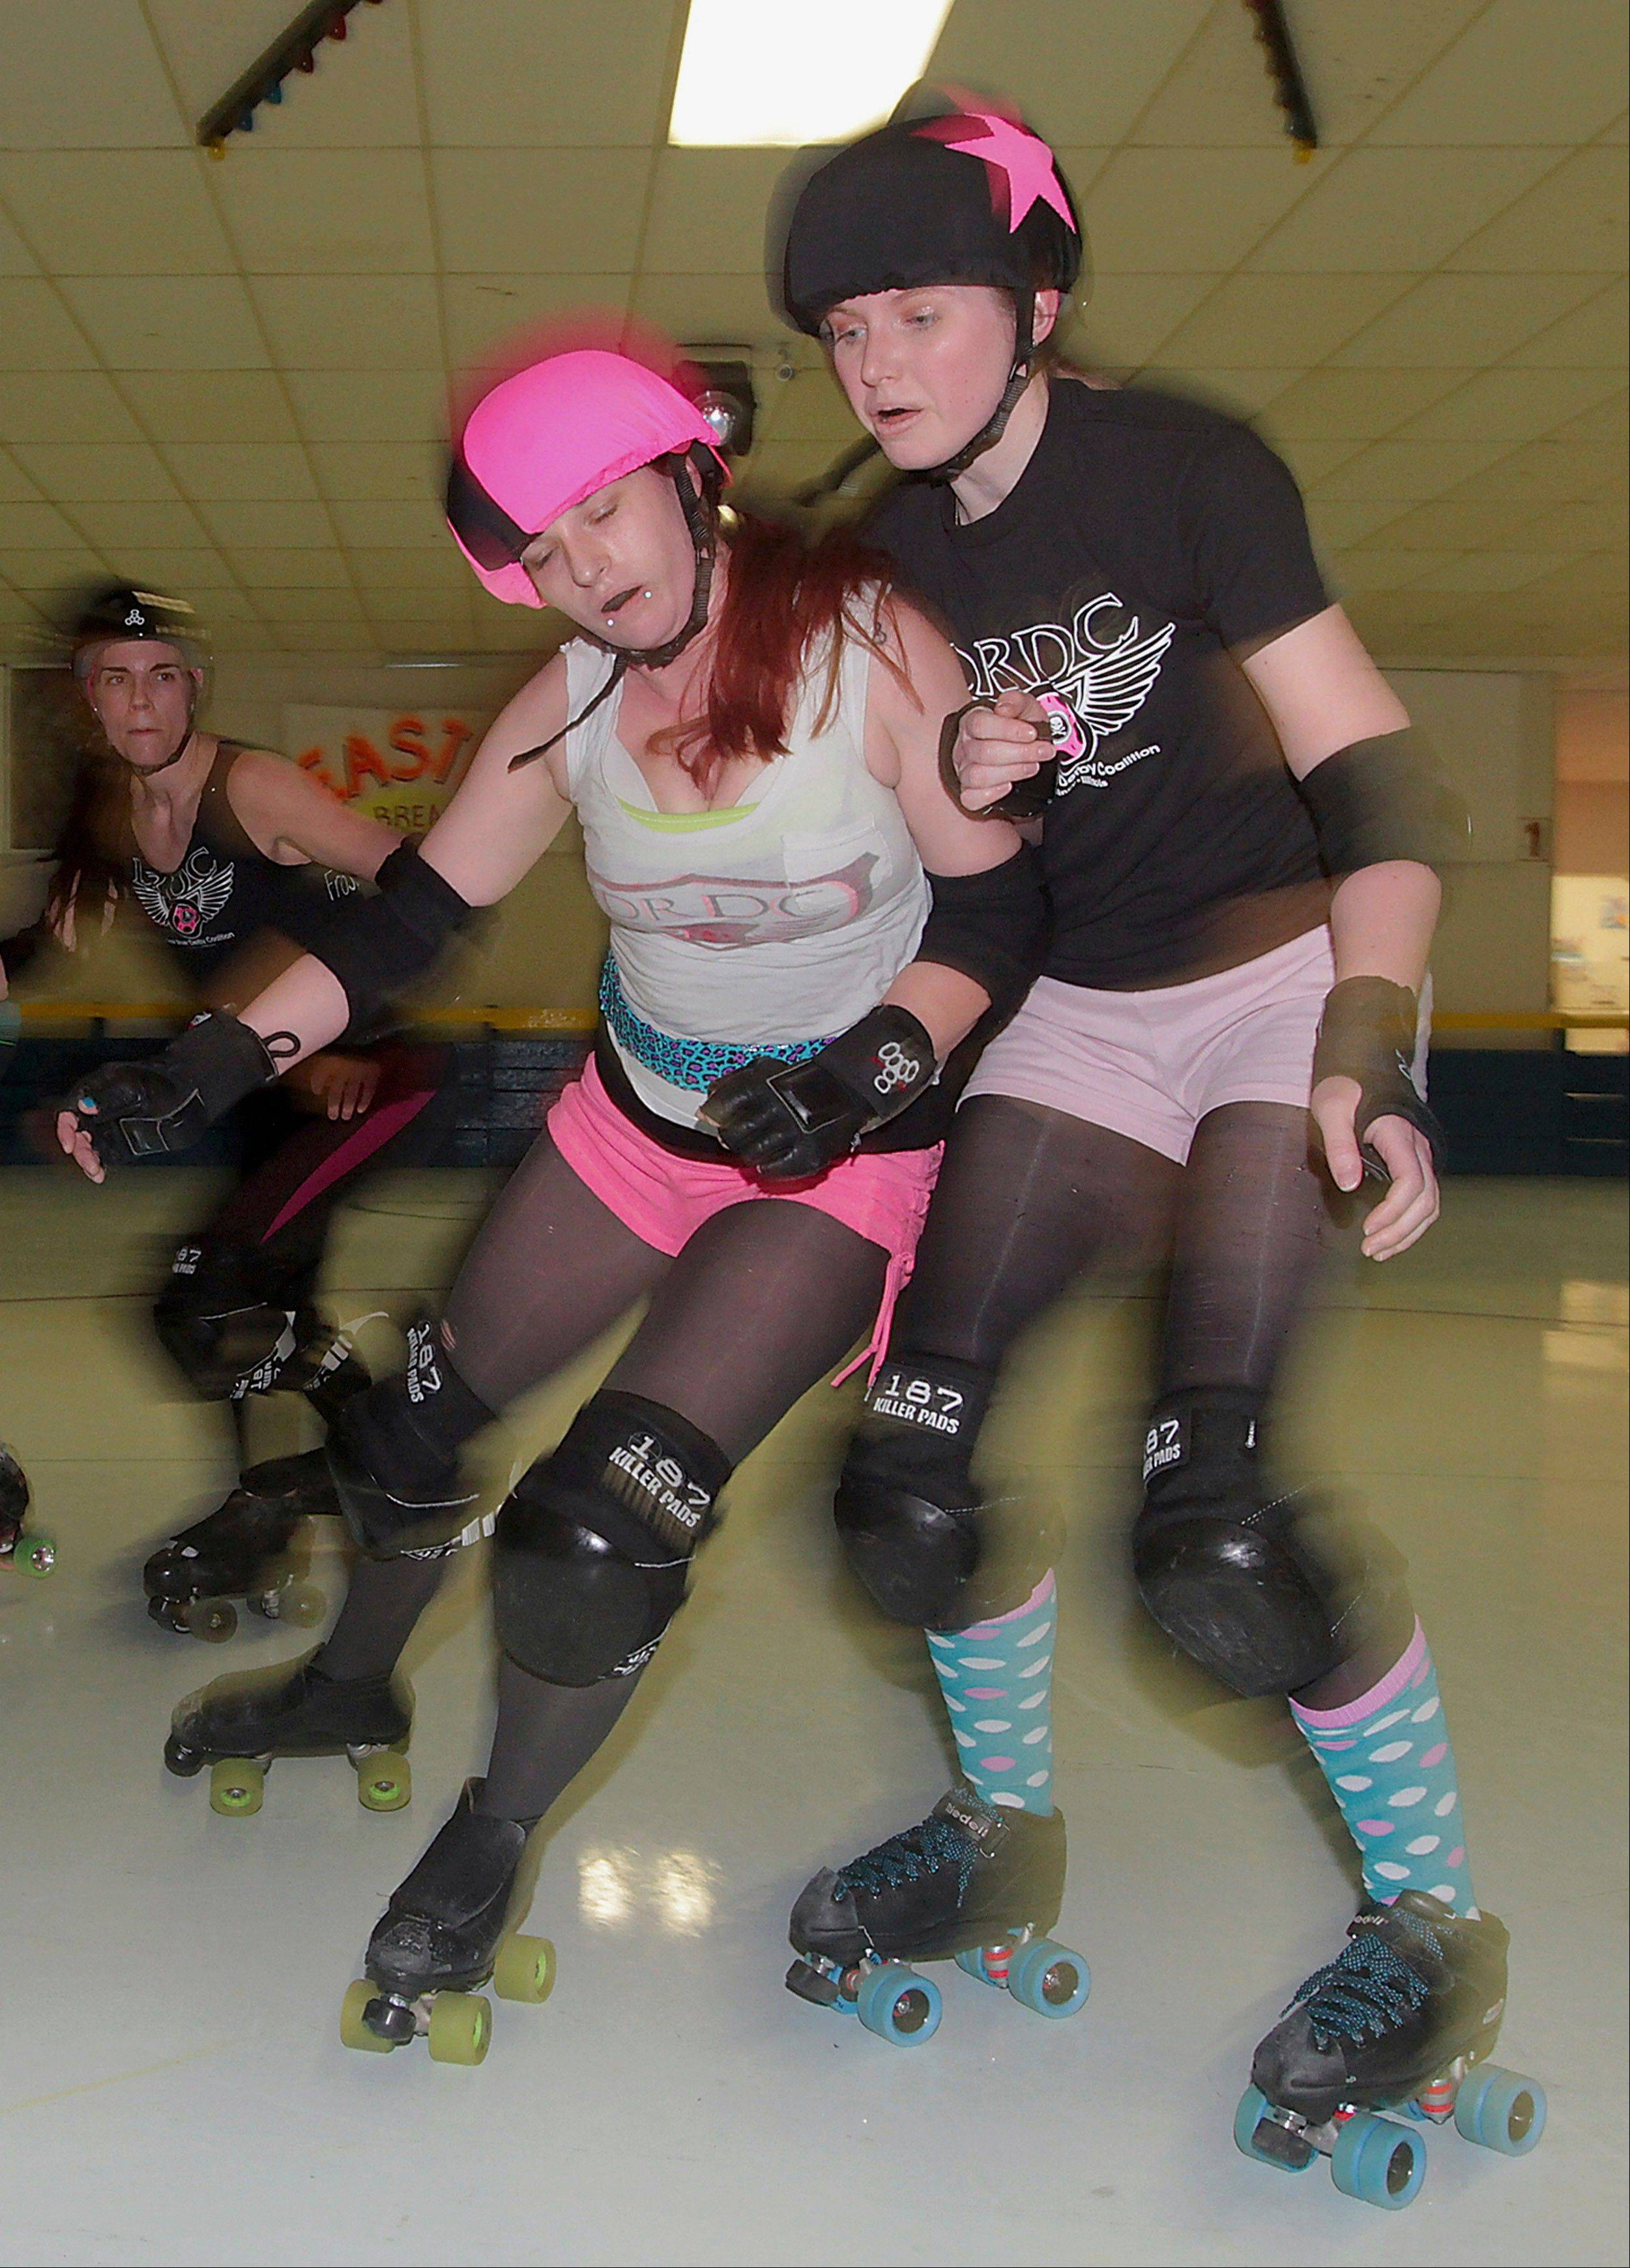 Members of the Dark River Derby Coalition women's roller derby team practice at Scotties Fun Spot in Quincy.